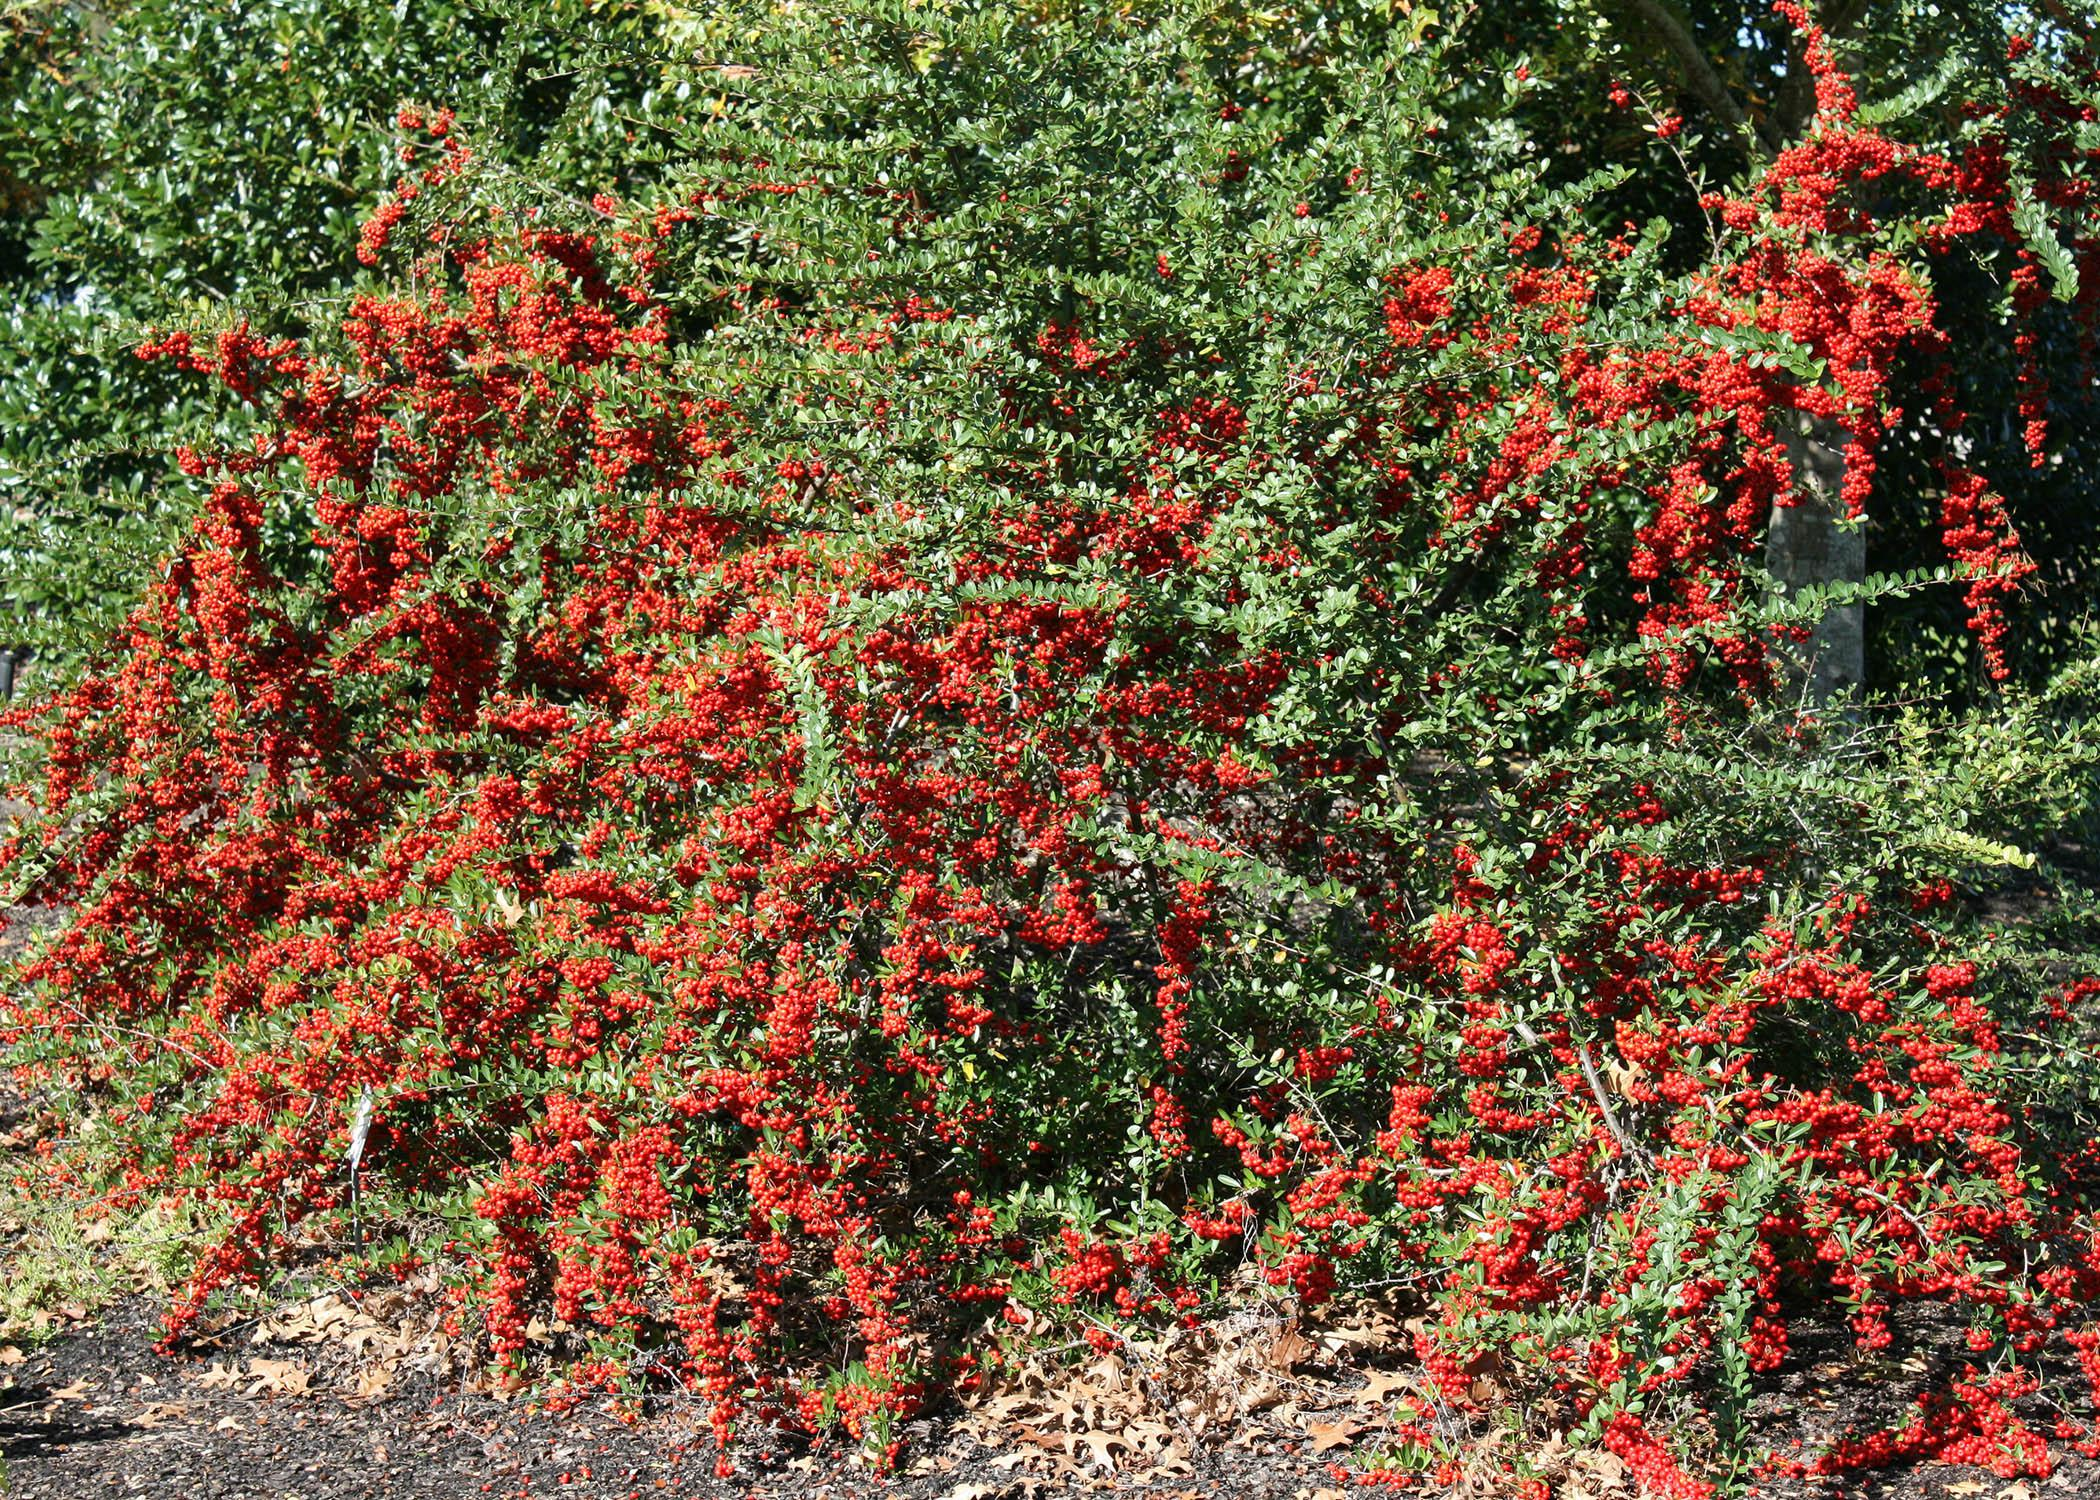 bushes with red berries offer winter